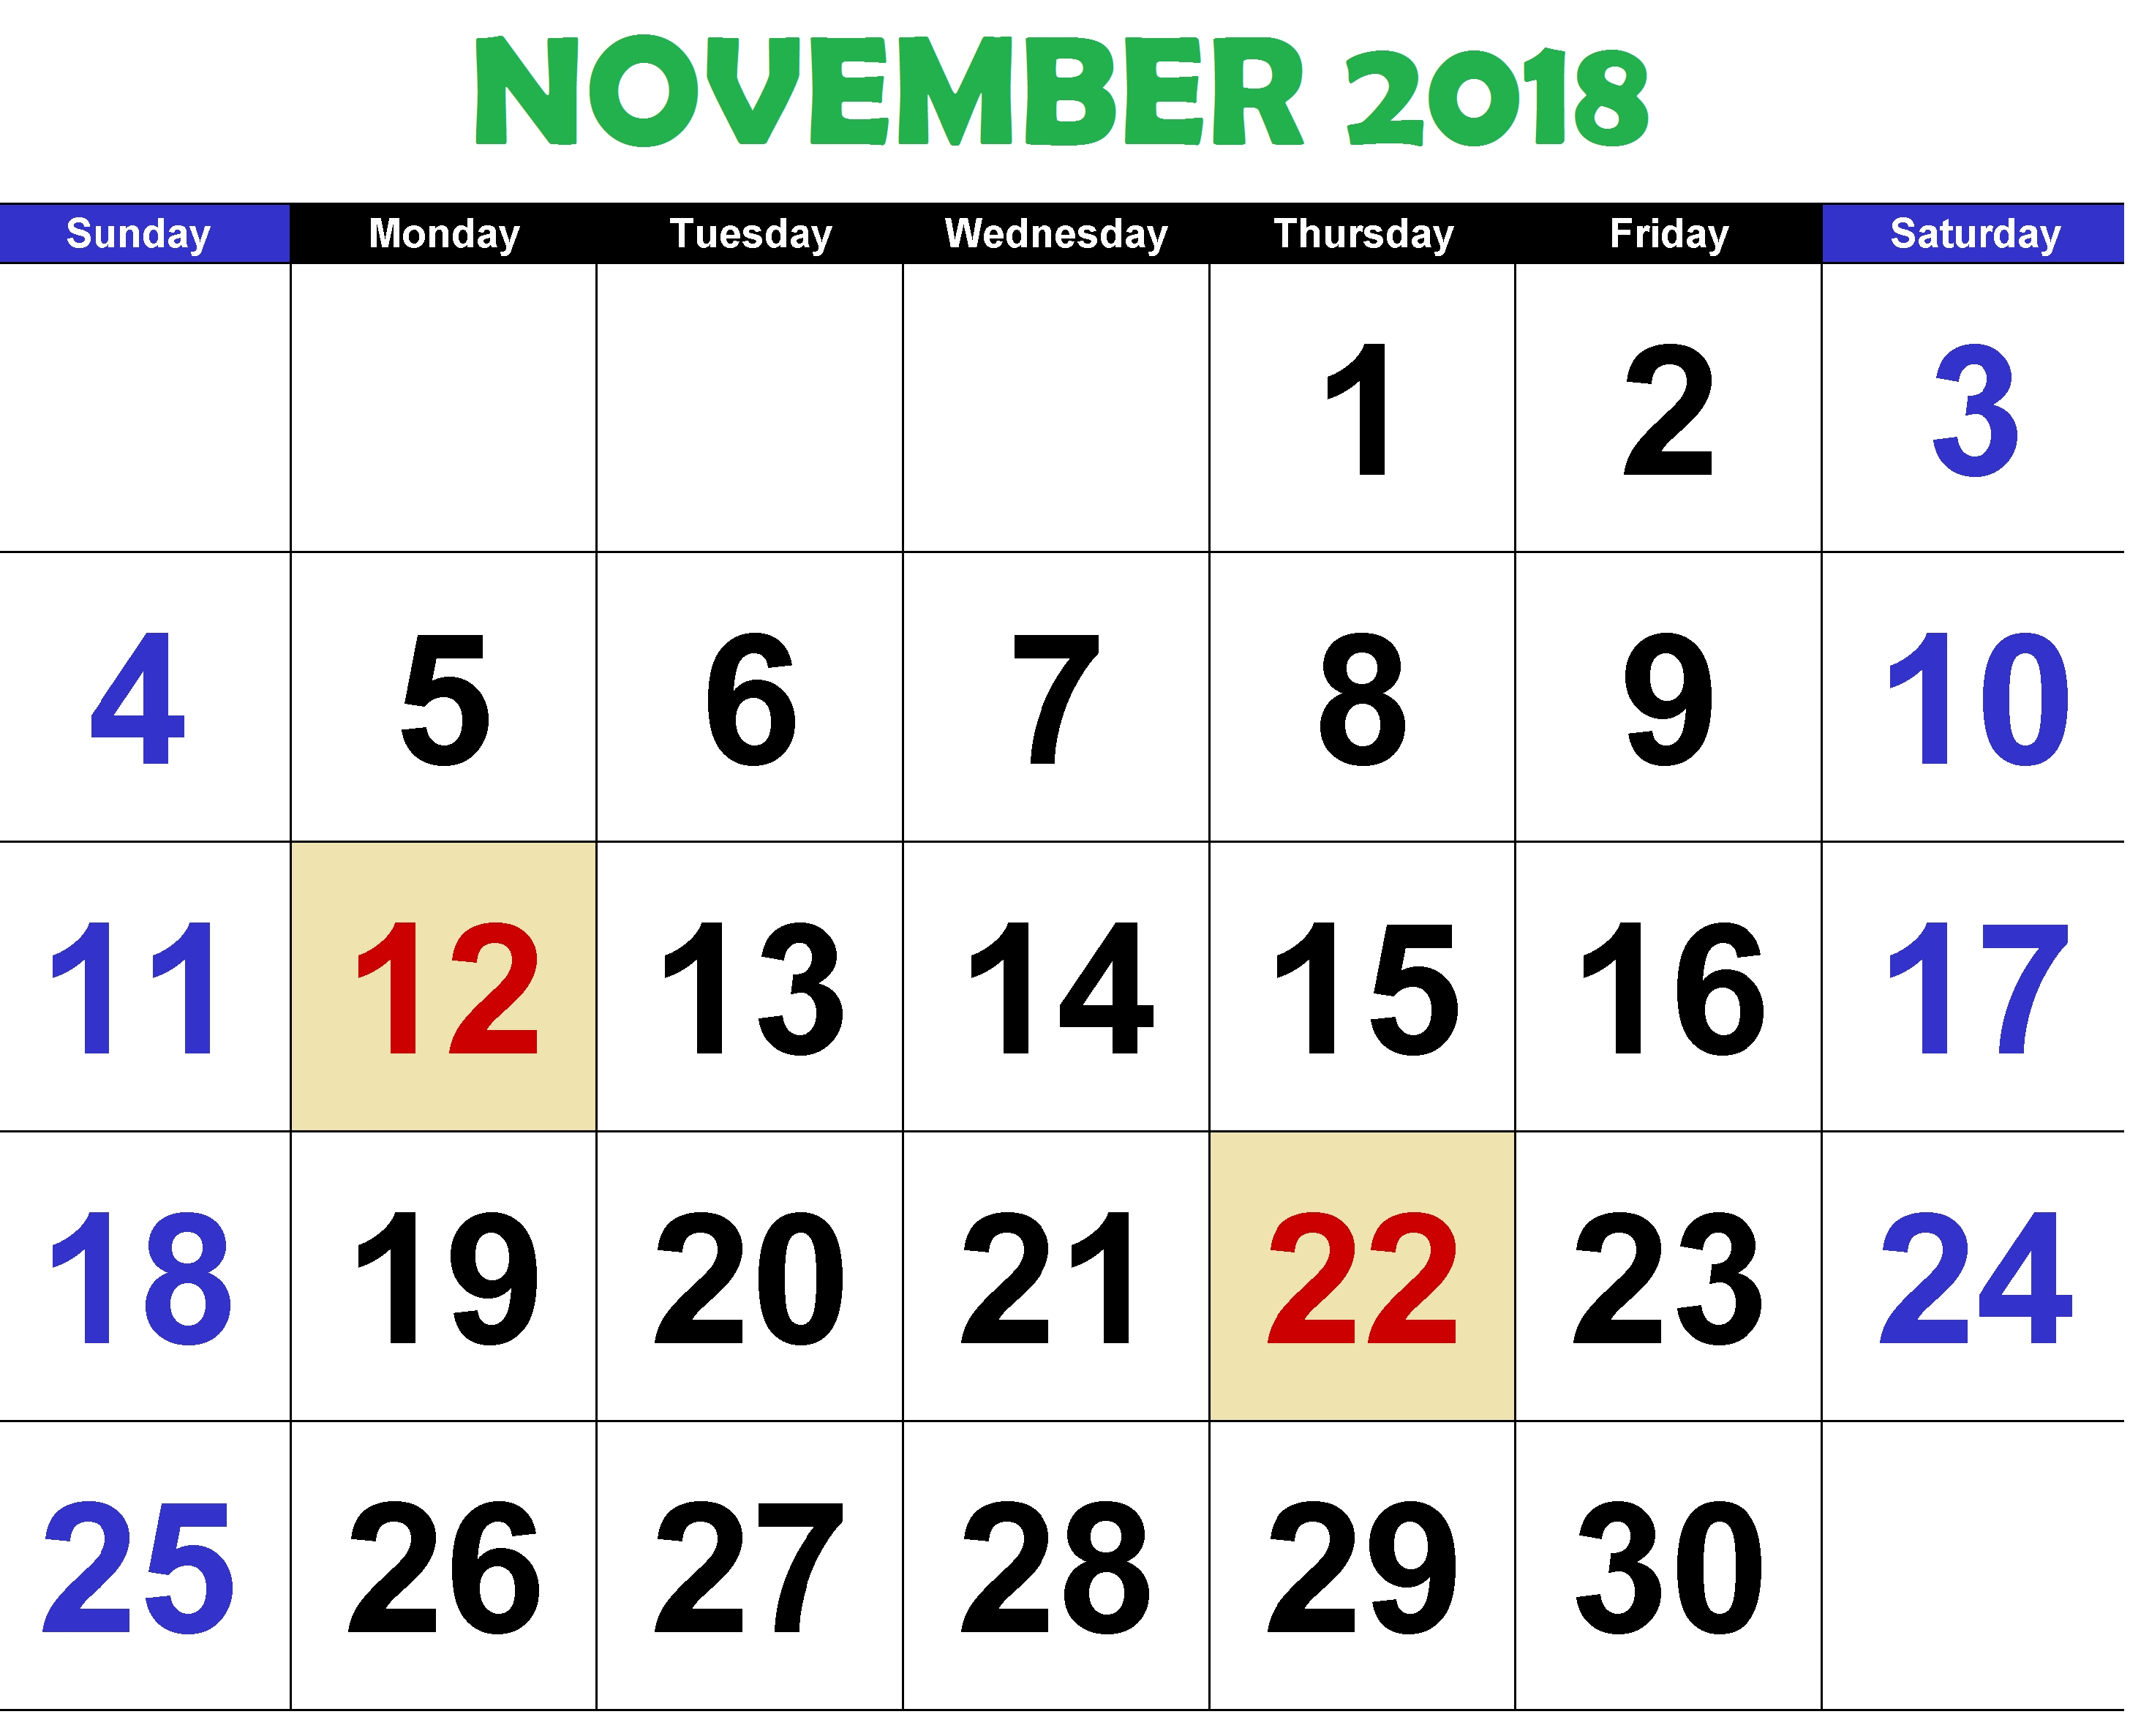 november 2018 calendar word::November 2018 Calendar Printable Template